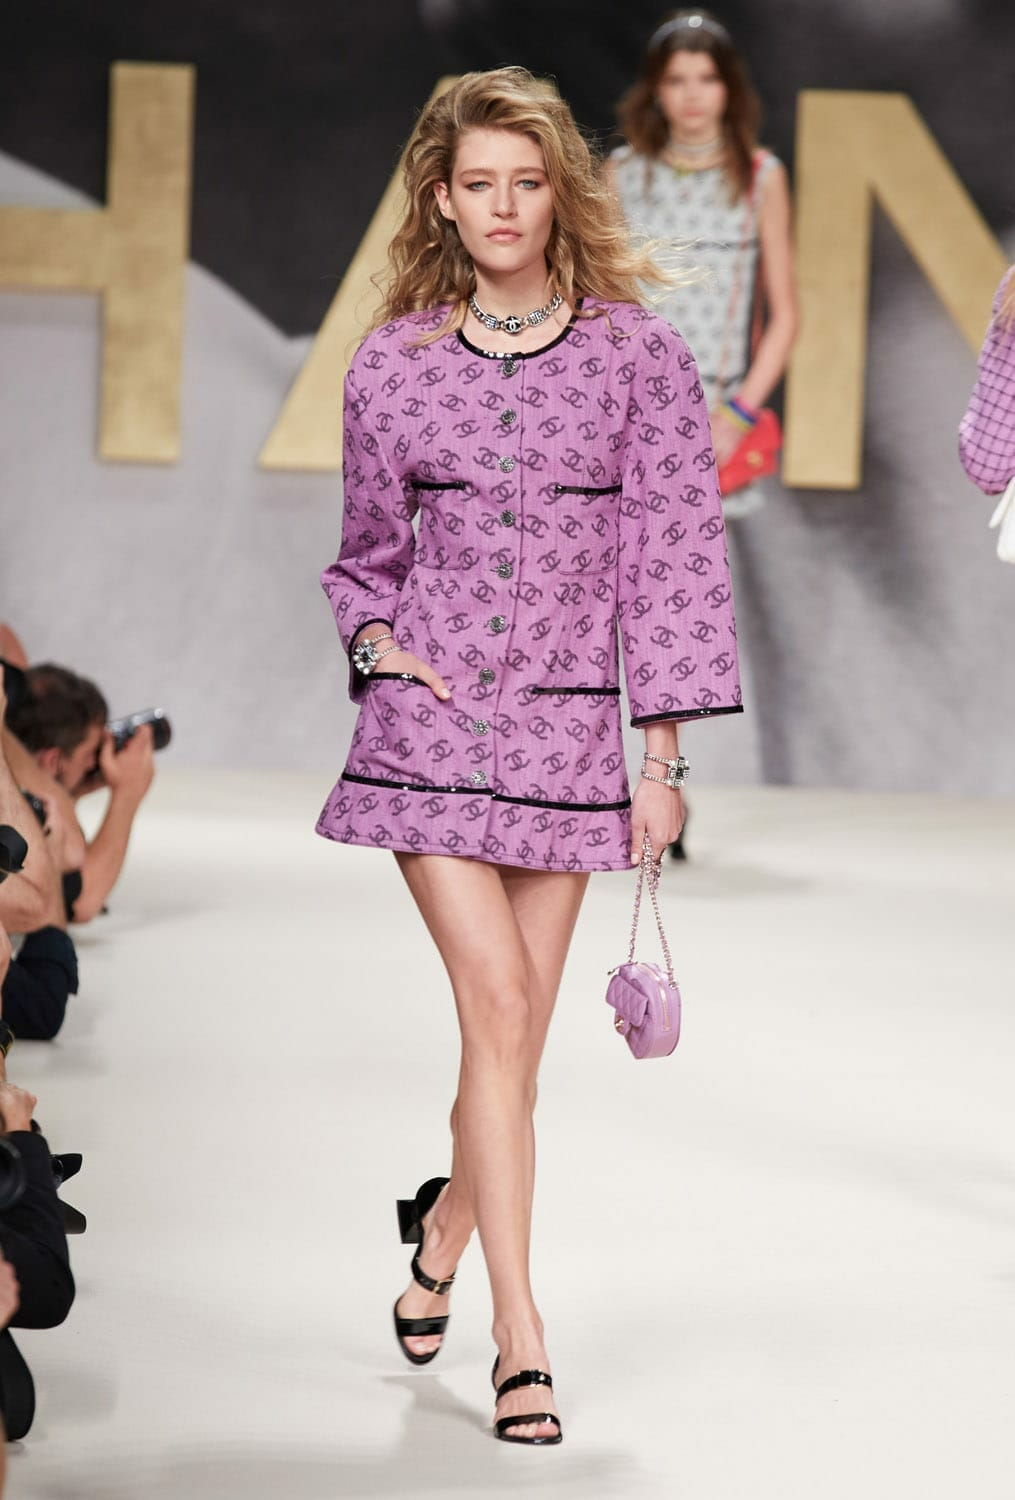 Chanel Spring Summer 2022 Ready-to-Wear. RUNWAY MAGAZINE ® Collections. RUNWAY NOW / RUNWAY NEW